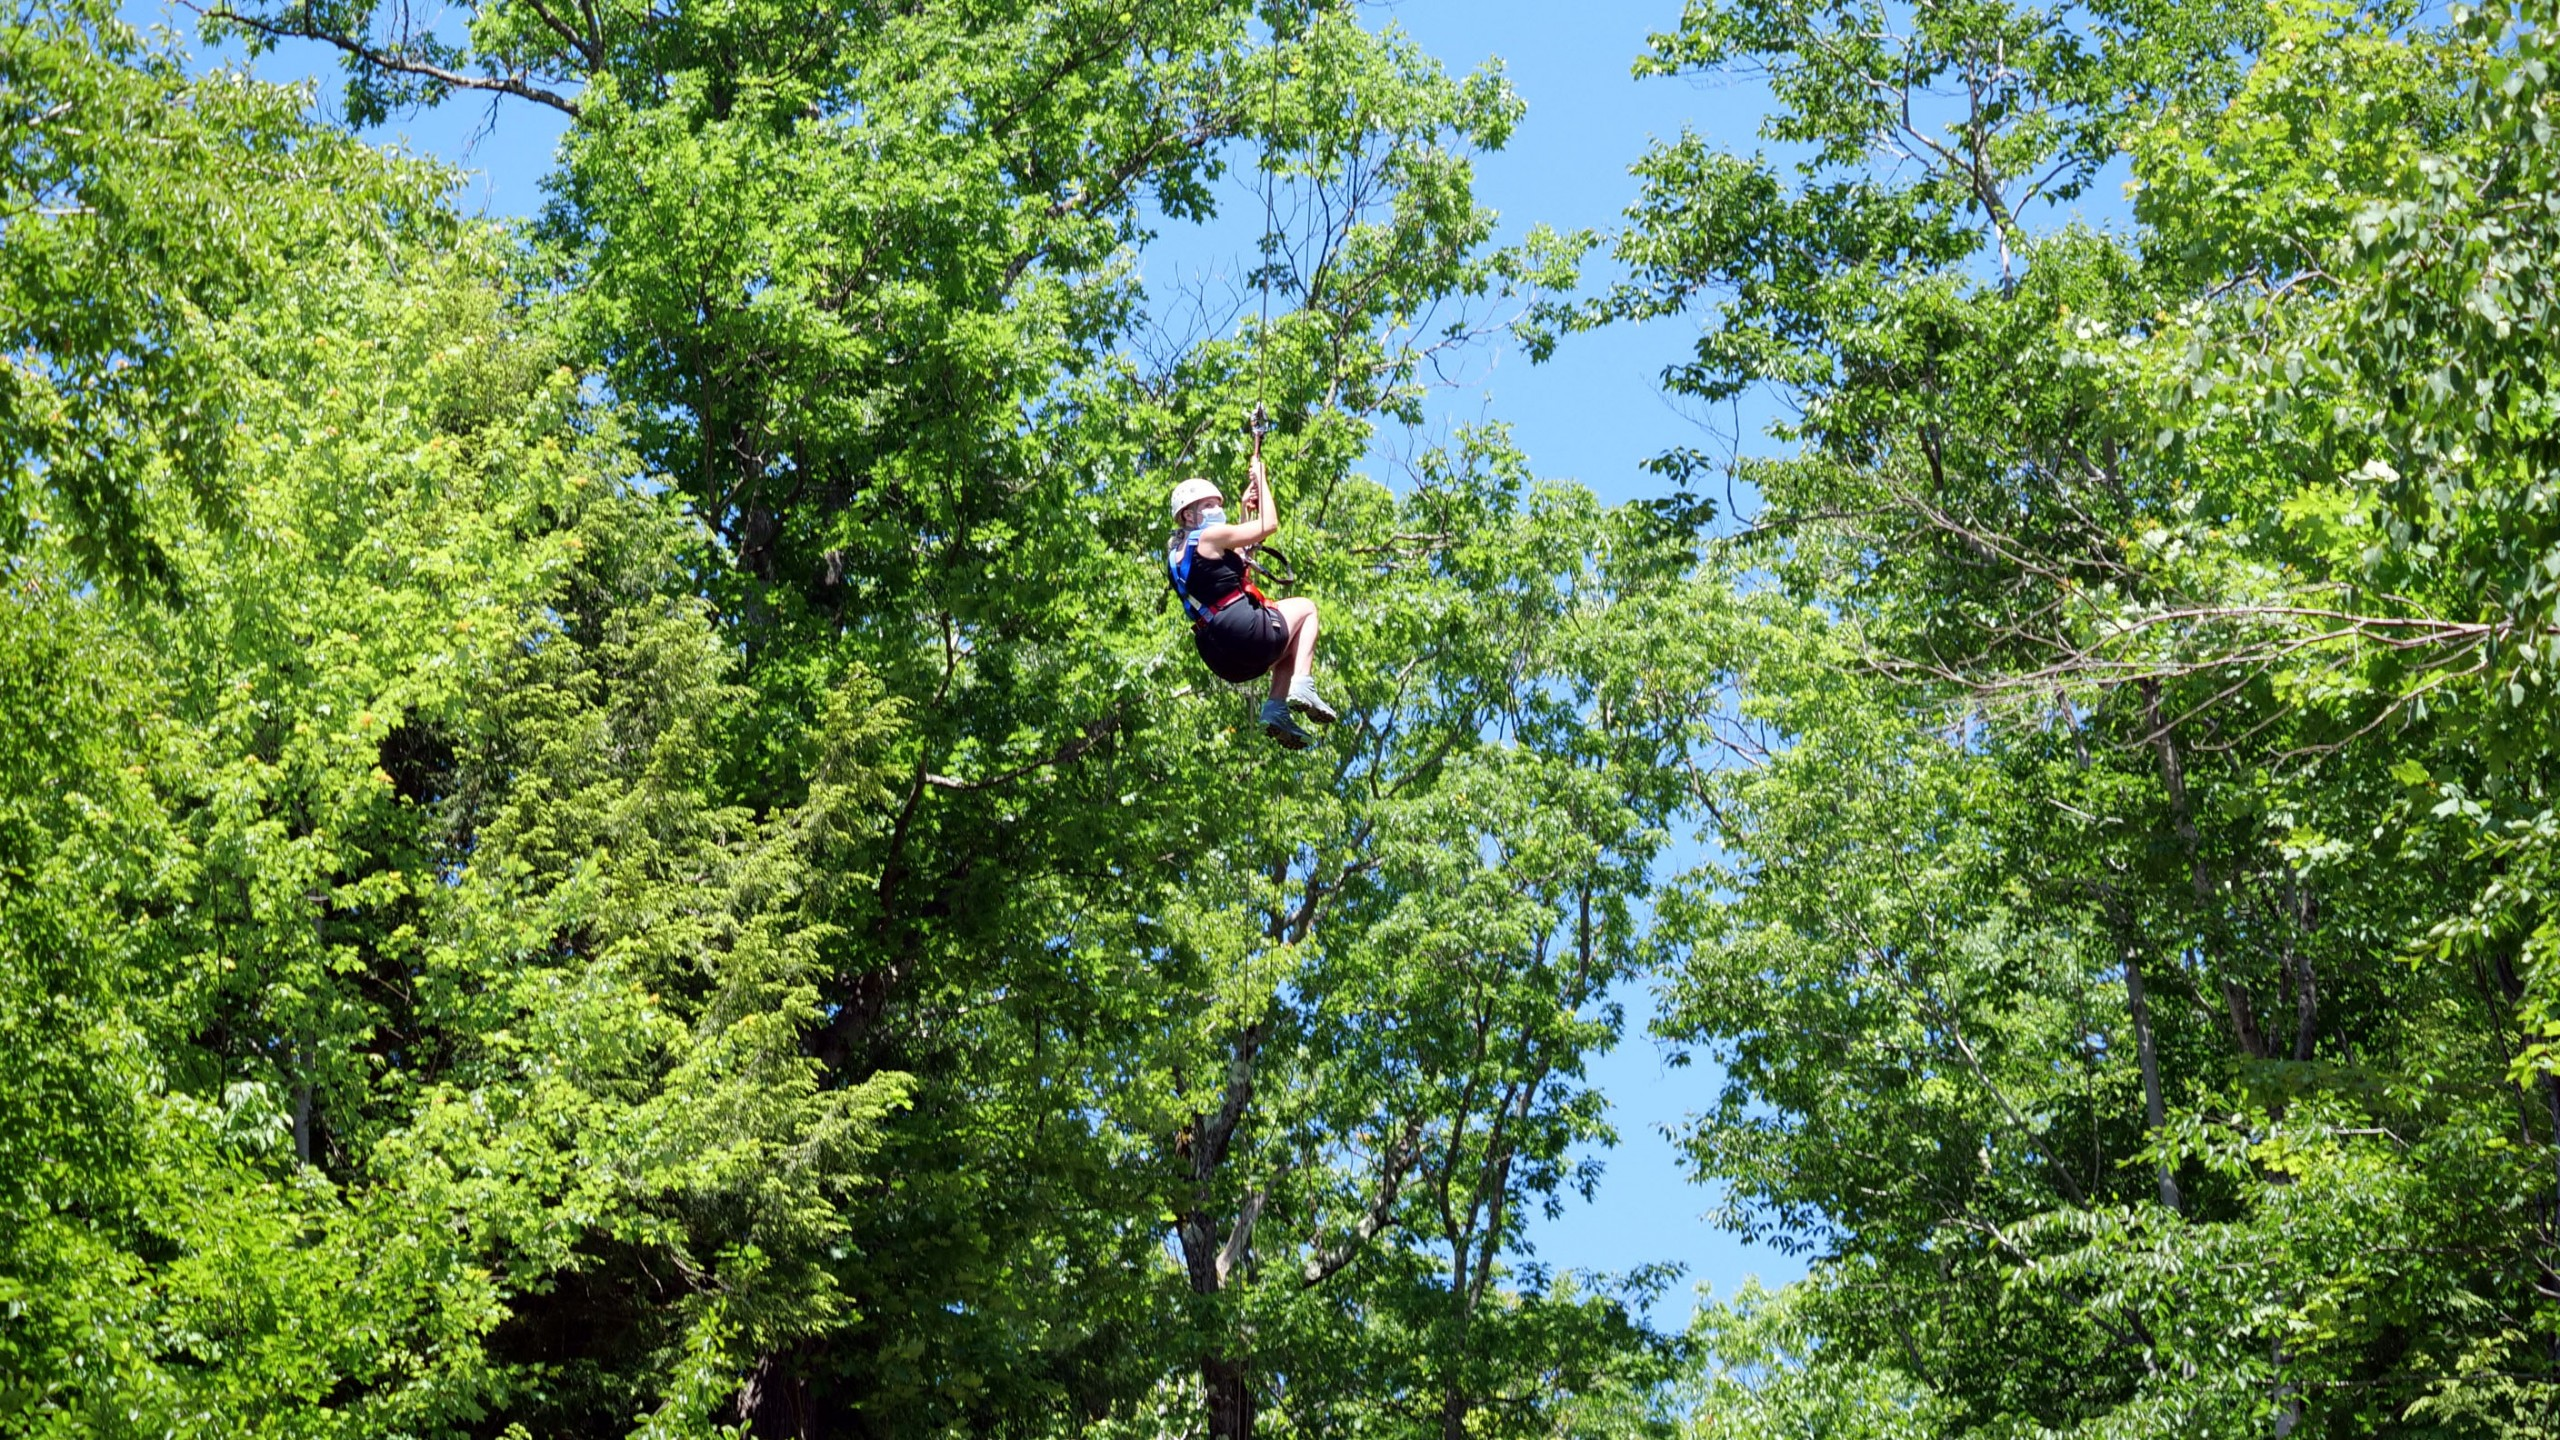 Zipping Through the Canopy